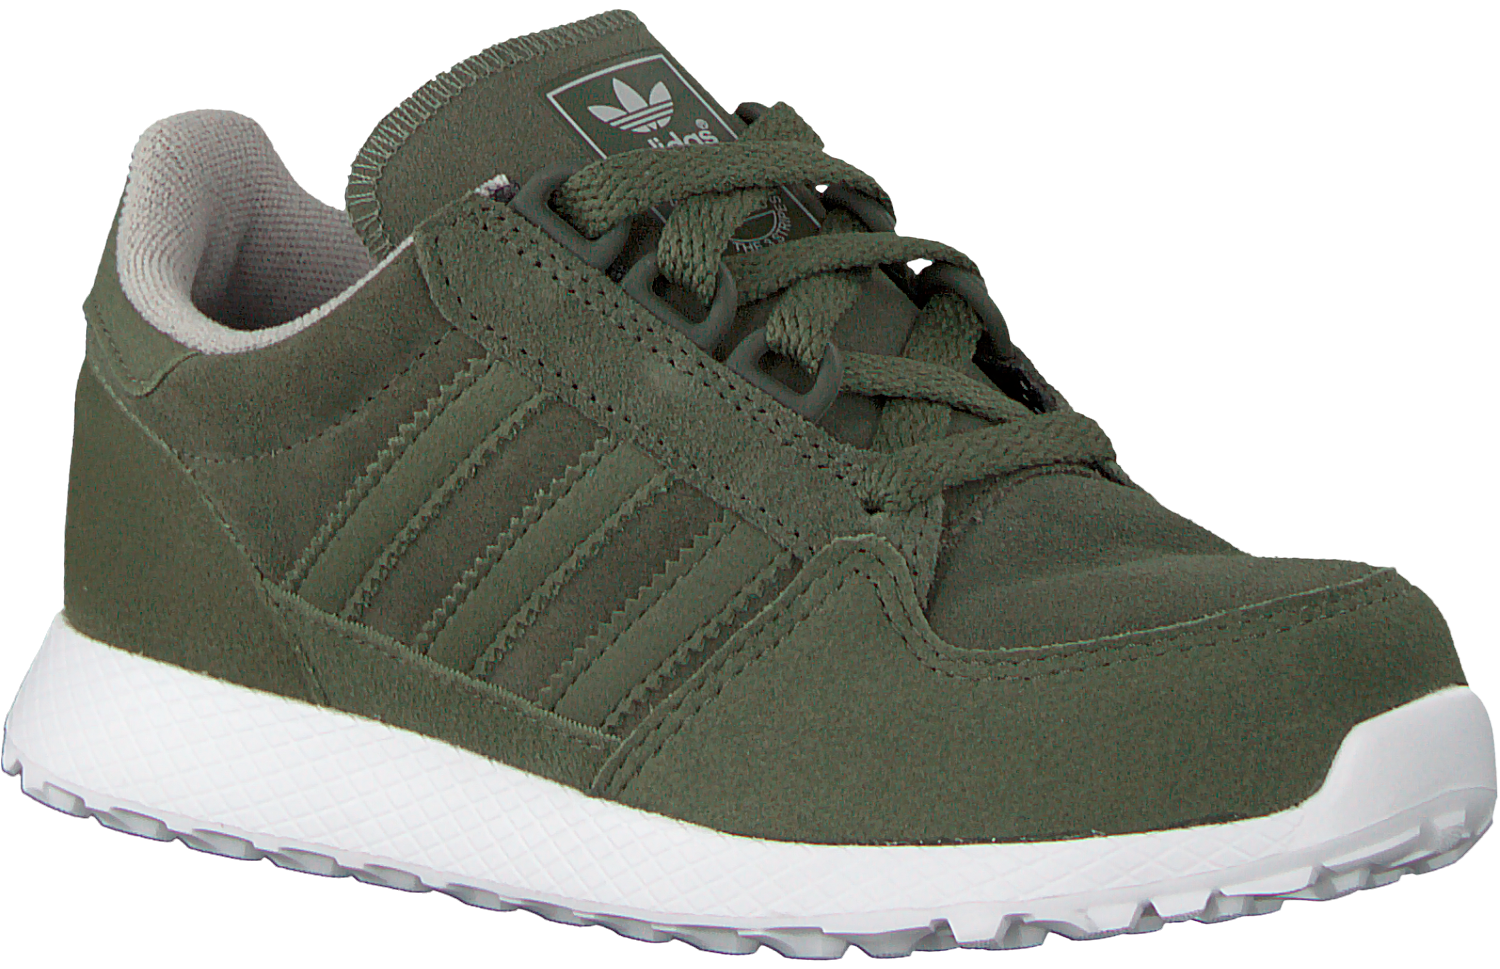 6b201904a23 Groene ADIDAS Sneakers FOREST GROVE C. ADIDAS. -20%. Previous